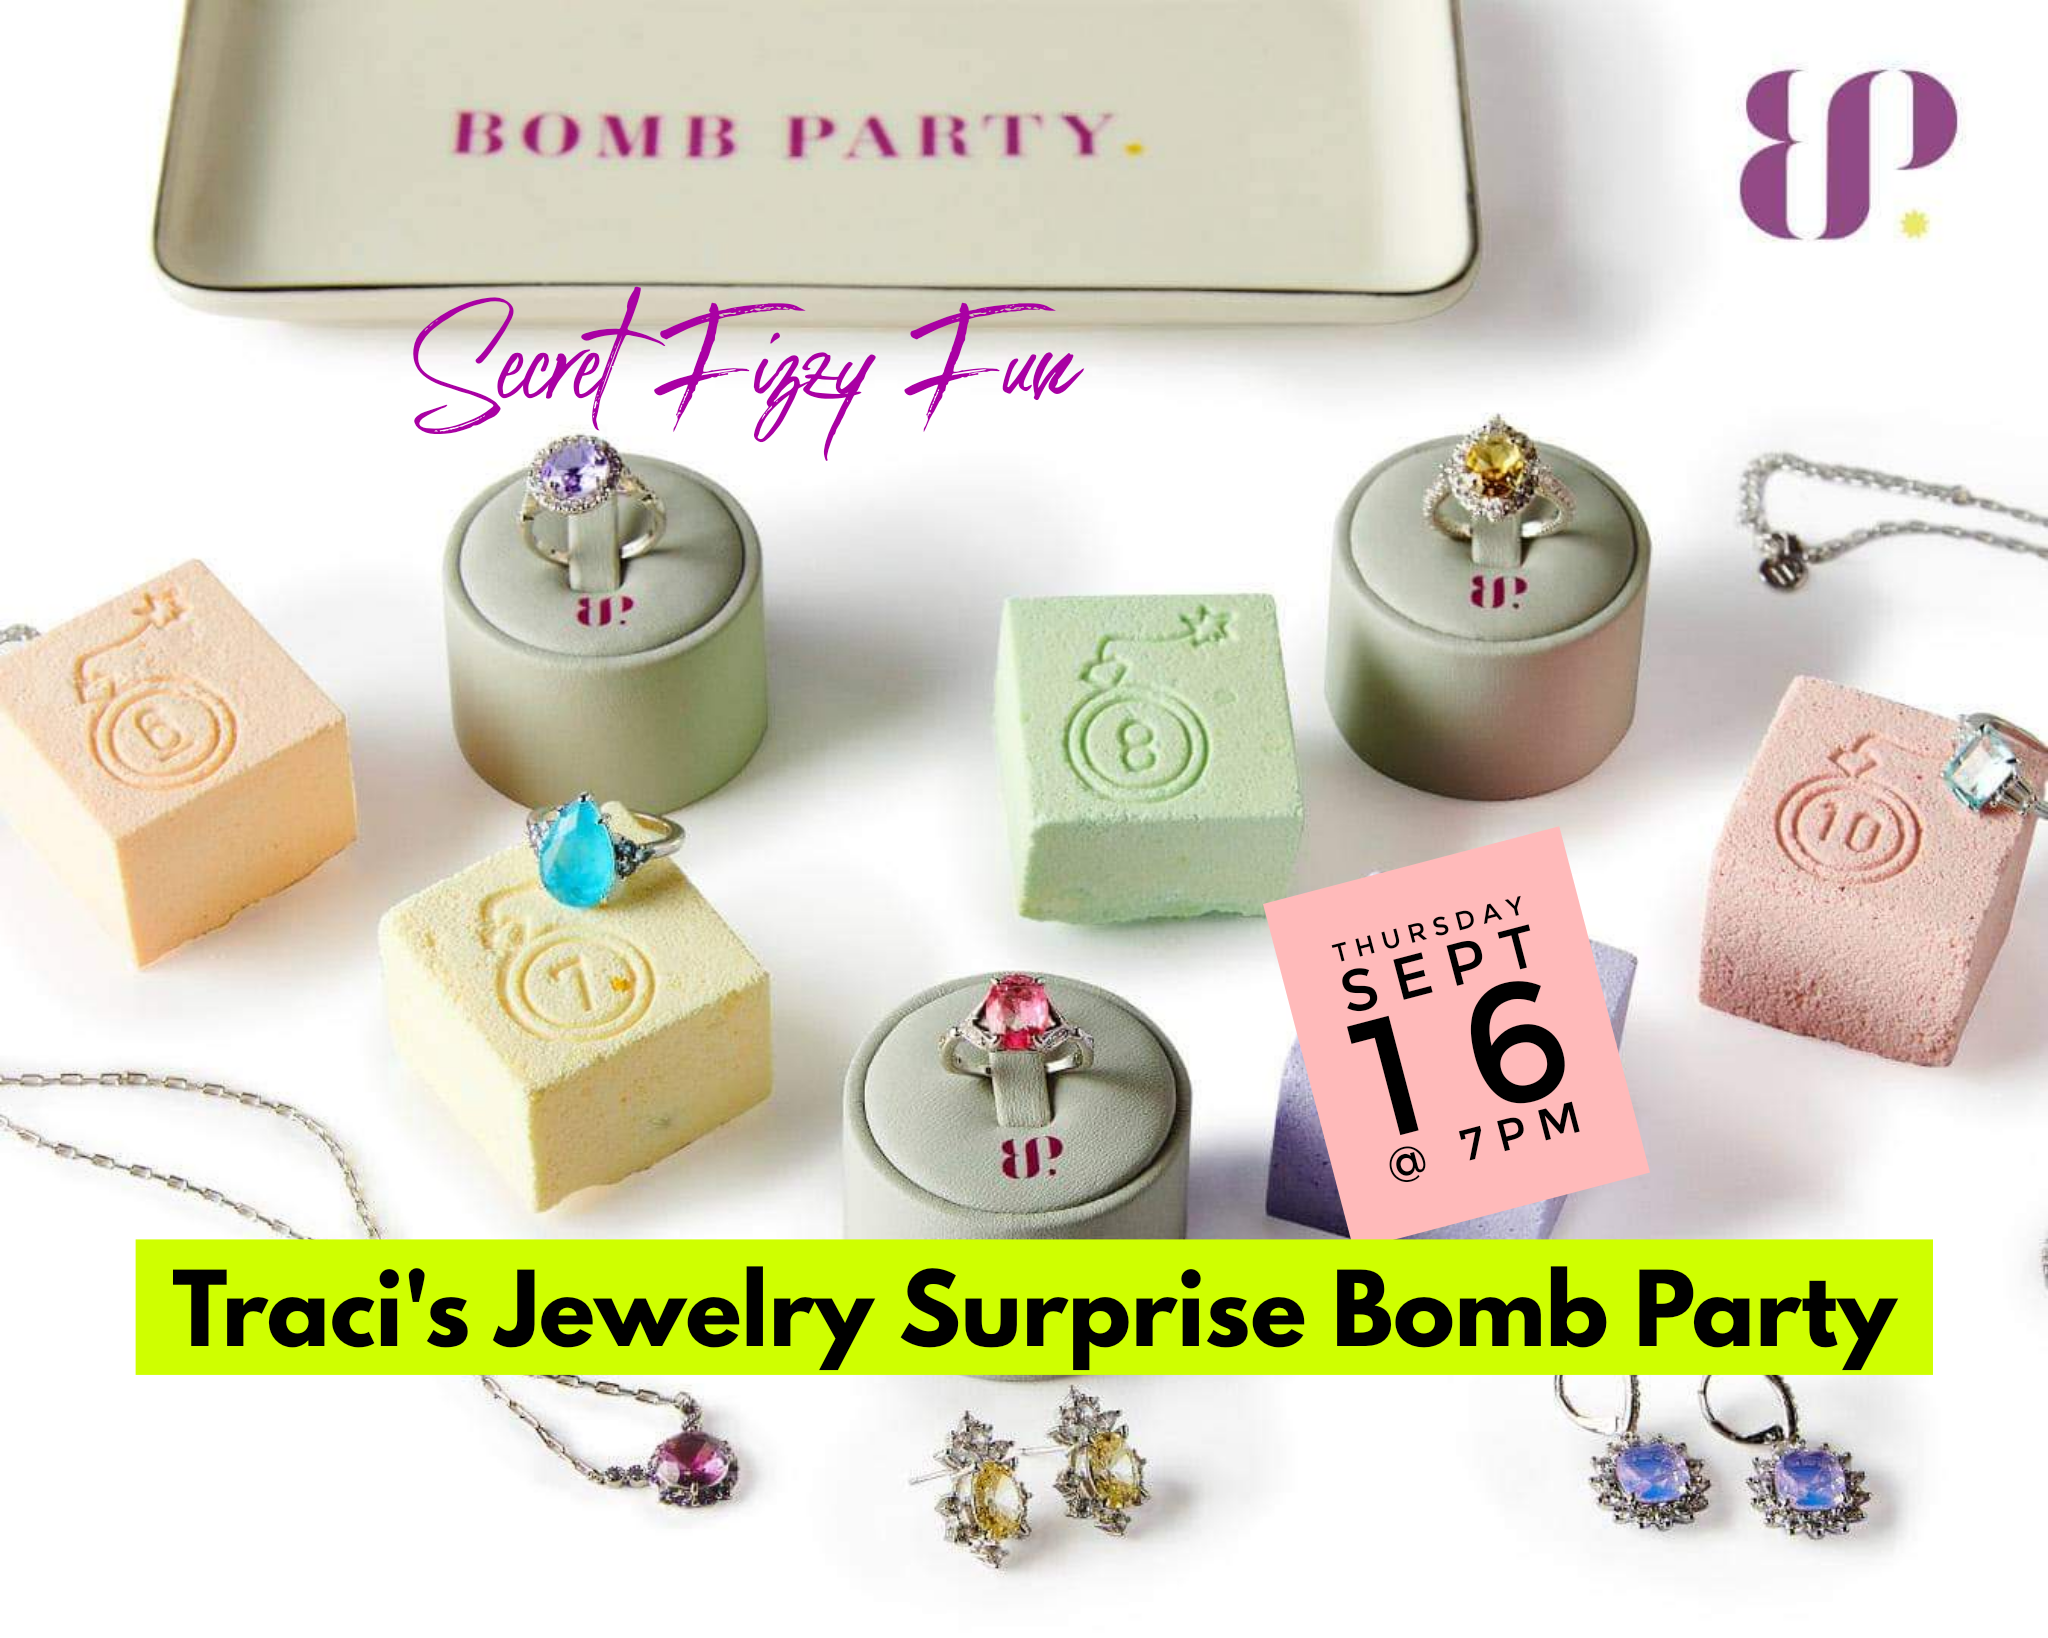 Traci's Surprise Jewelry Bomb Party